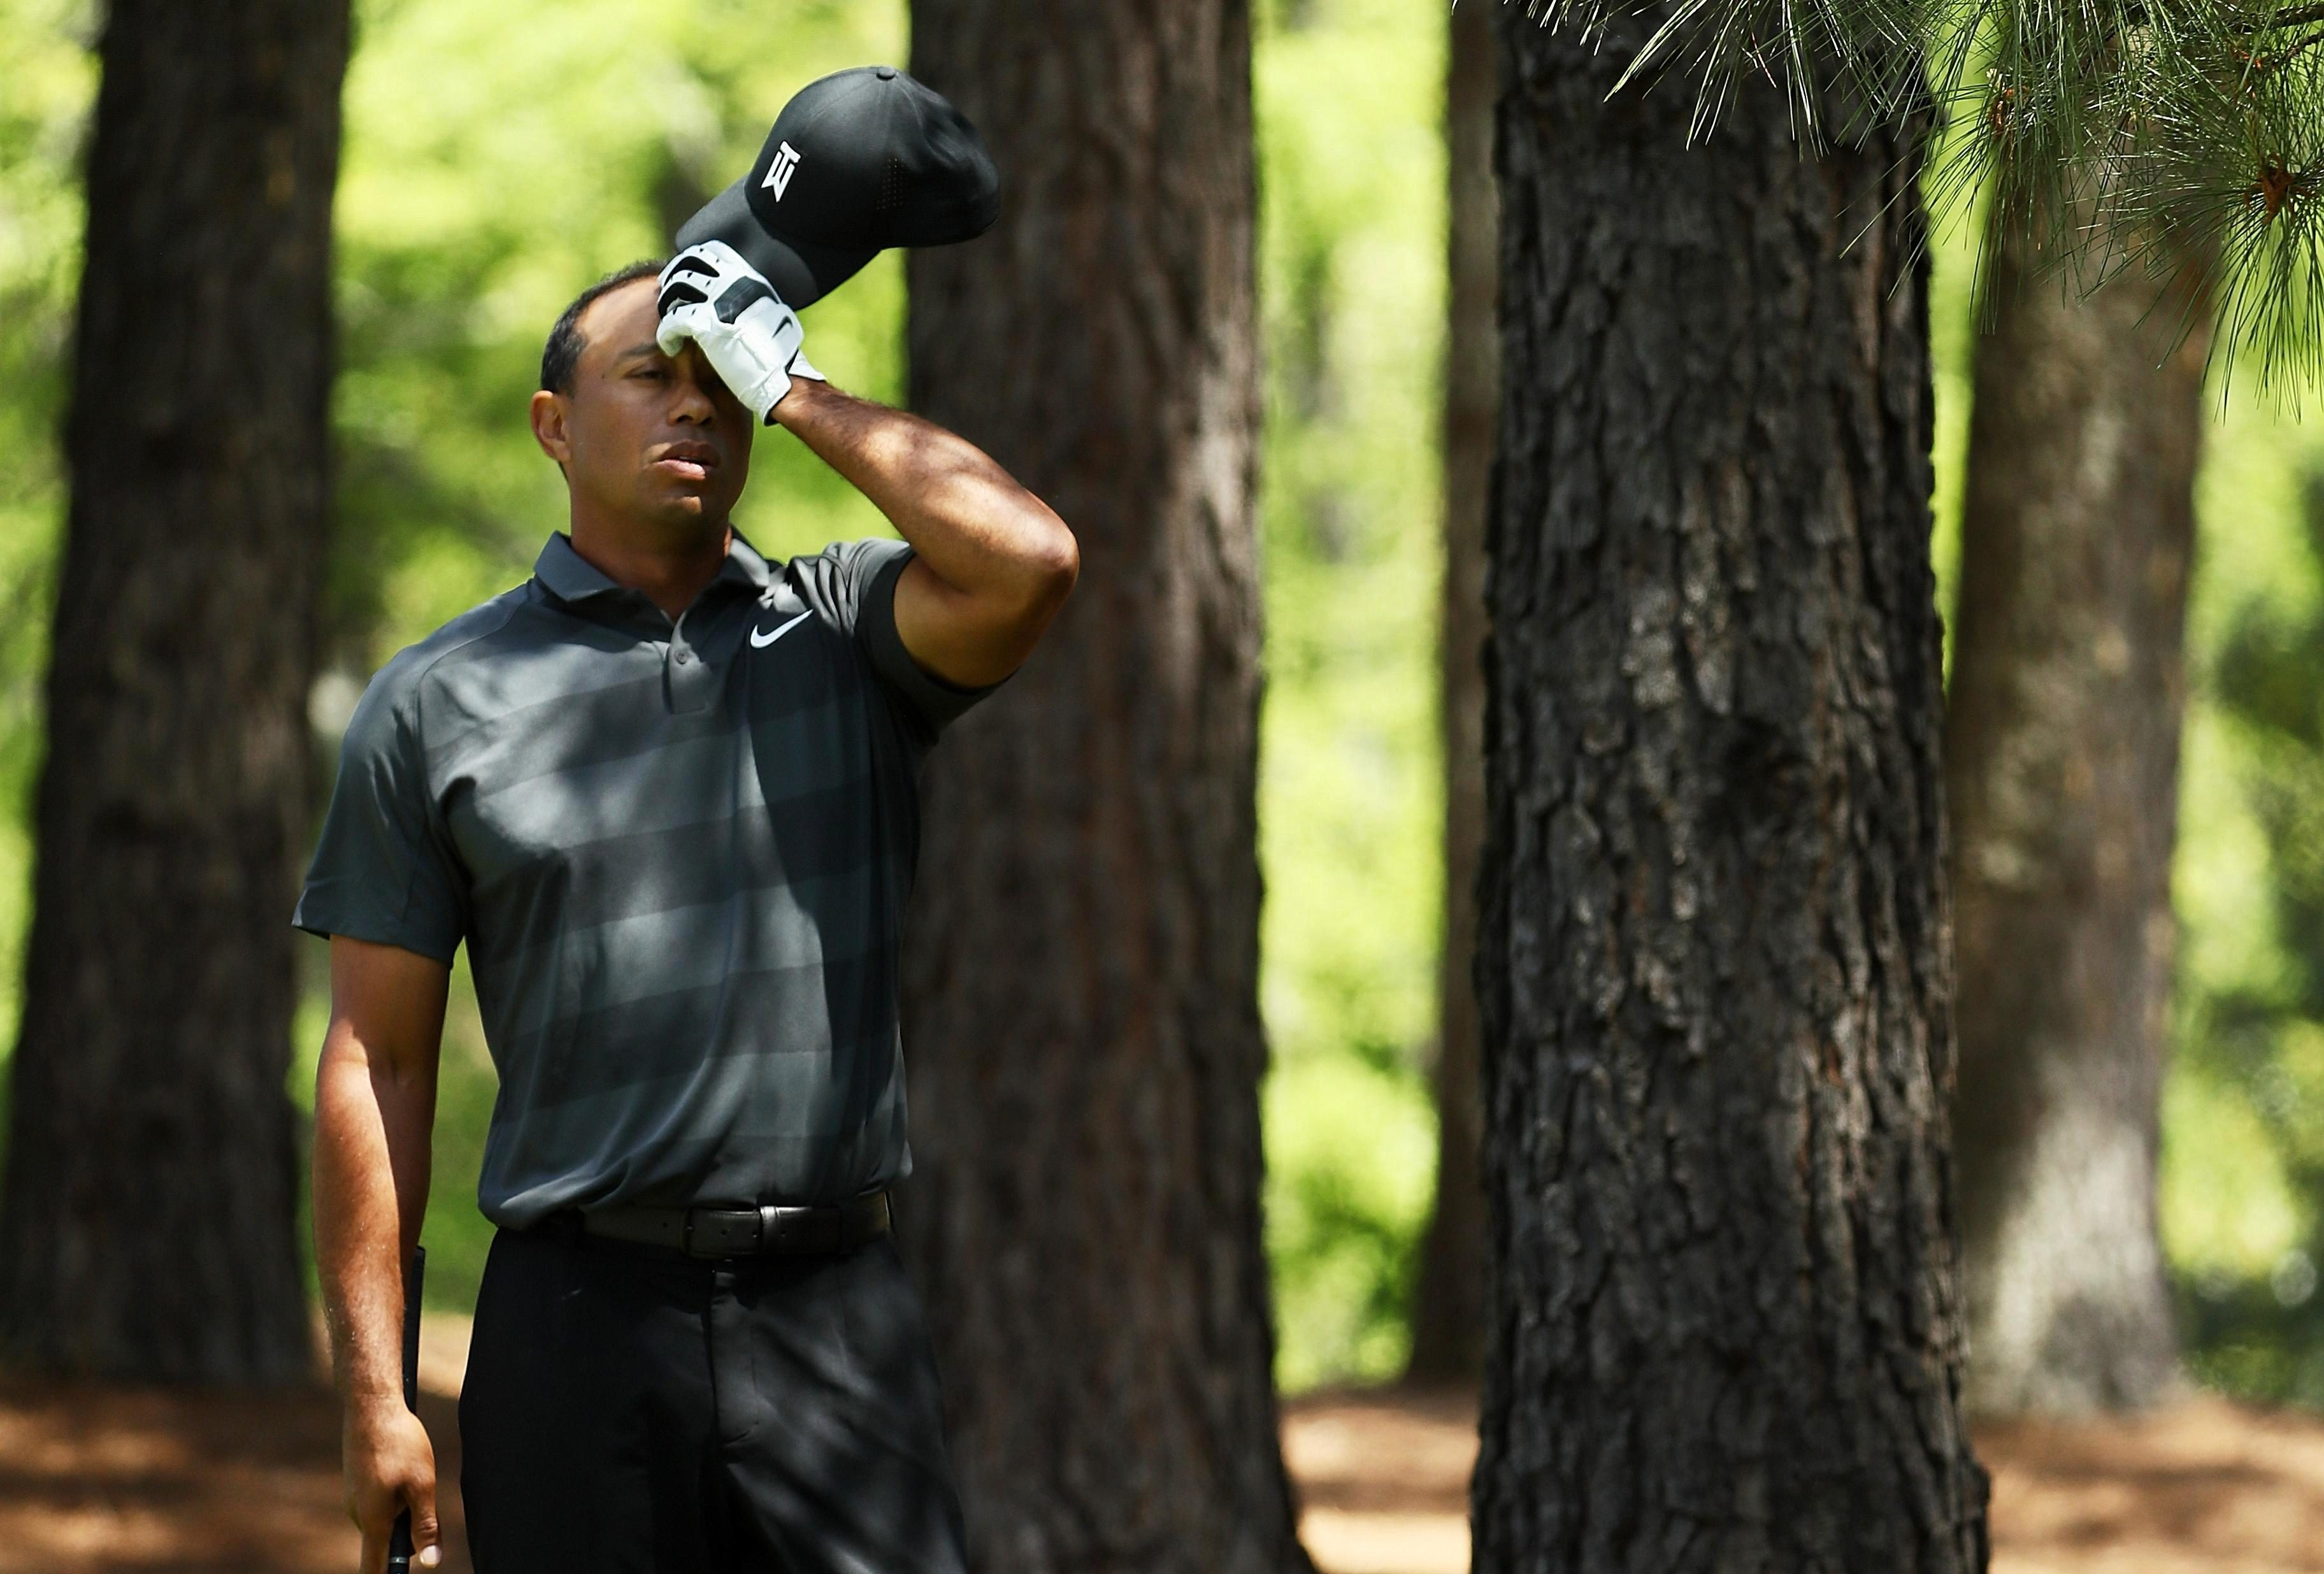 Tiger Woods had a frustrating first day at the Masters